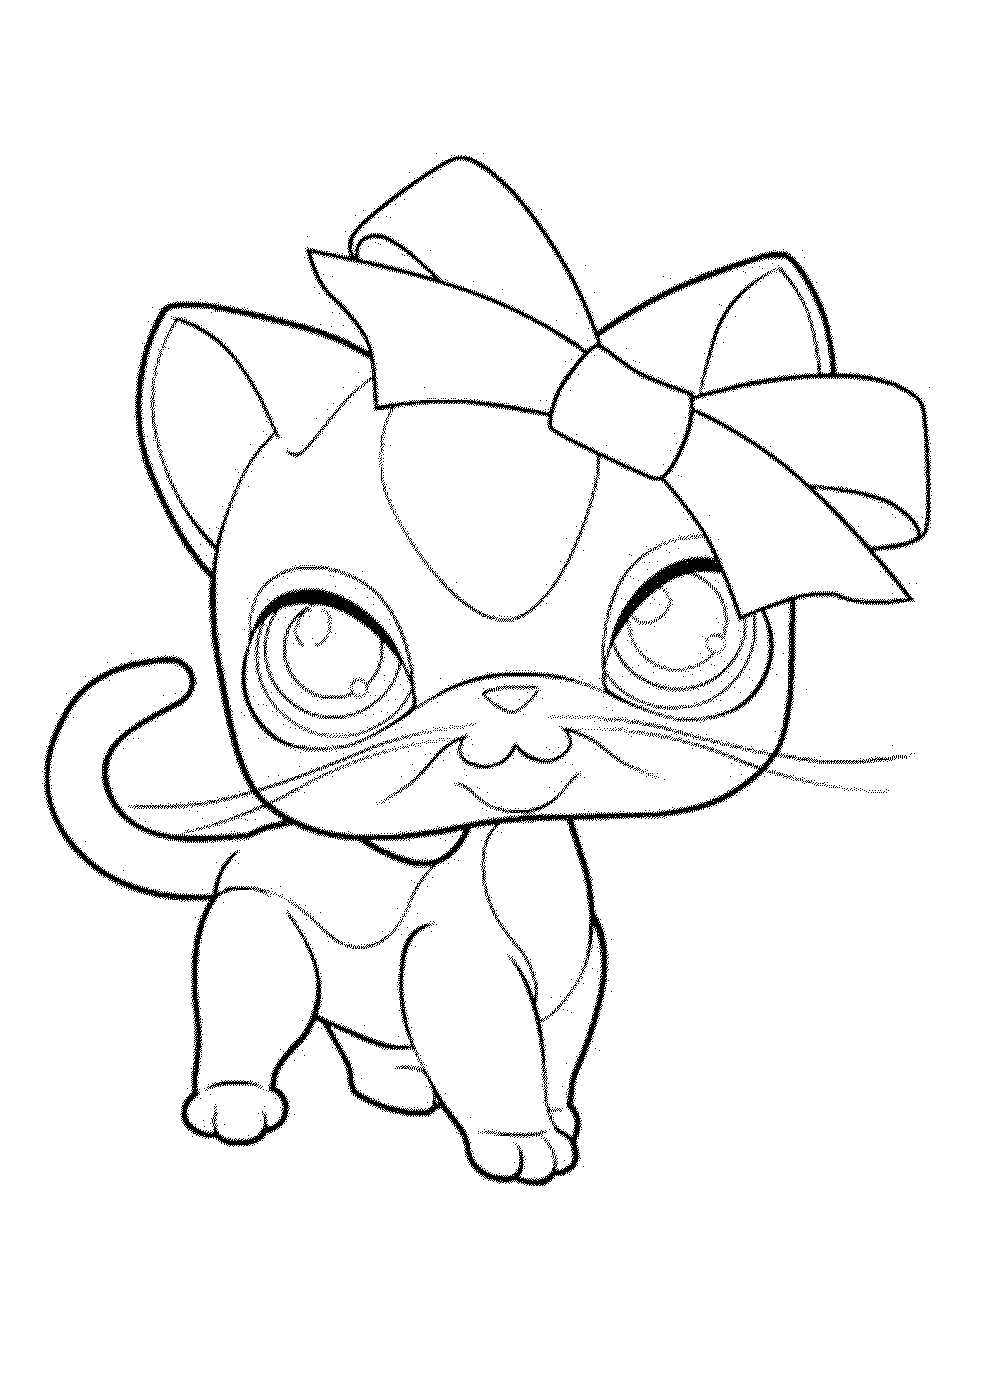 coloring pages of littlest pet shop - Littlest Pet Shop Coloring Page